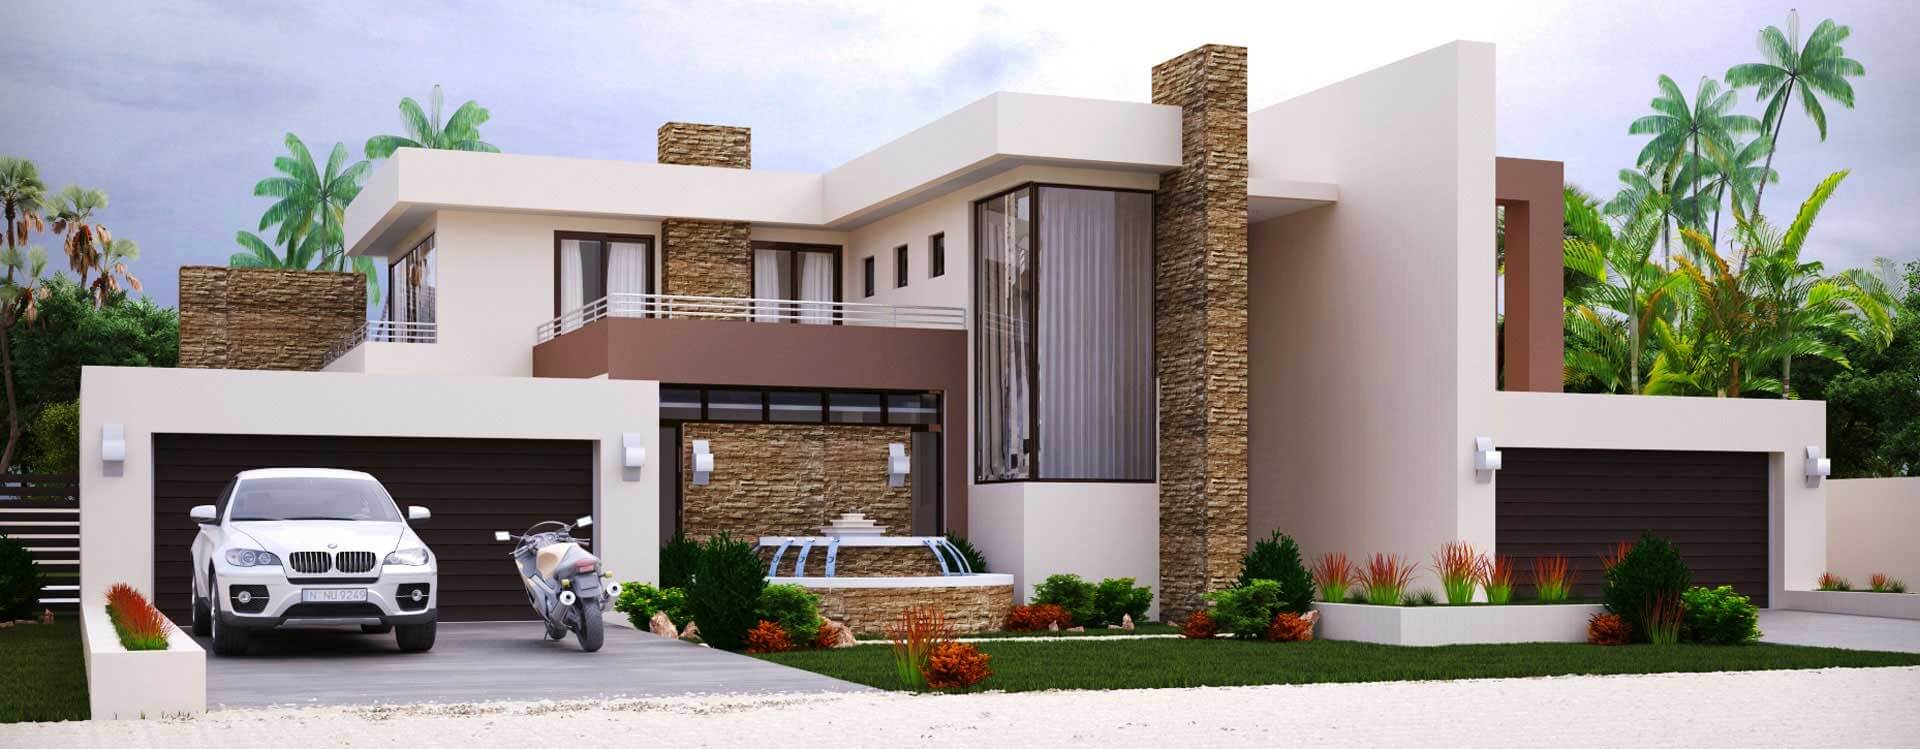 Best House Plans reverse floor plan pinit white Modern Style House Plan 4 Bedroom Double Storey Floor Plans Home Design